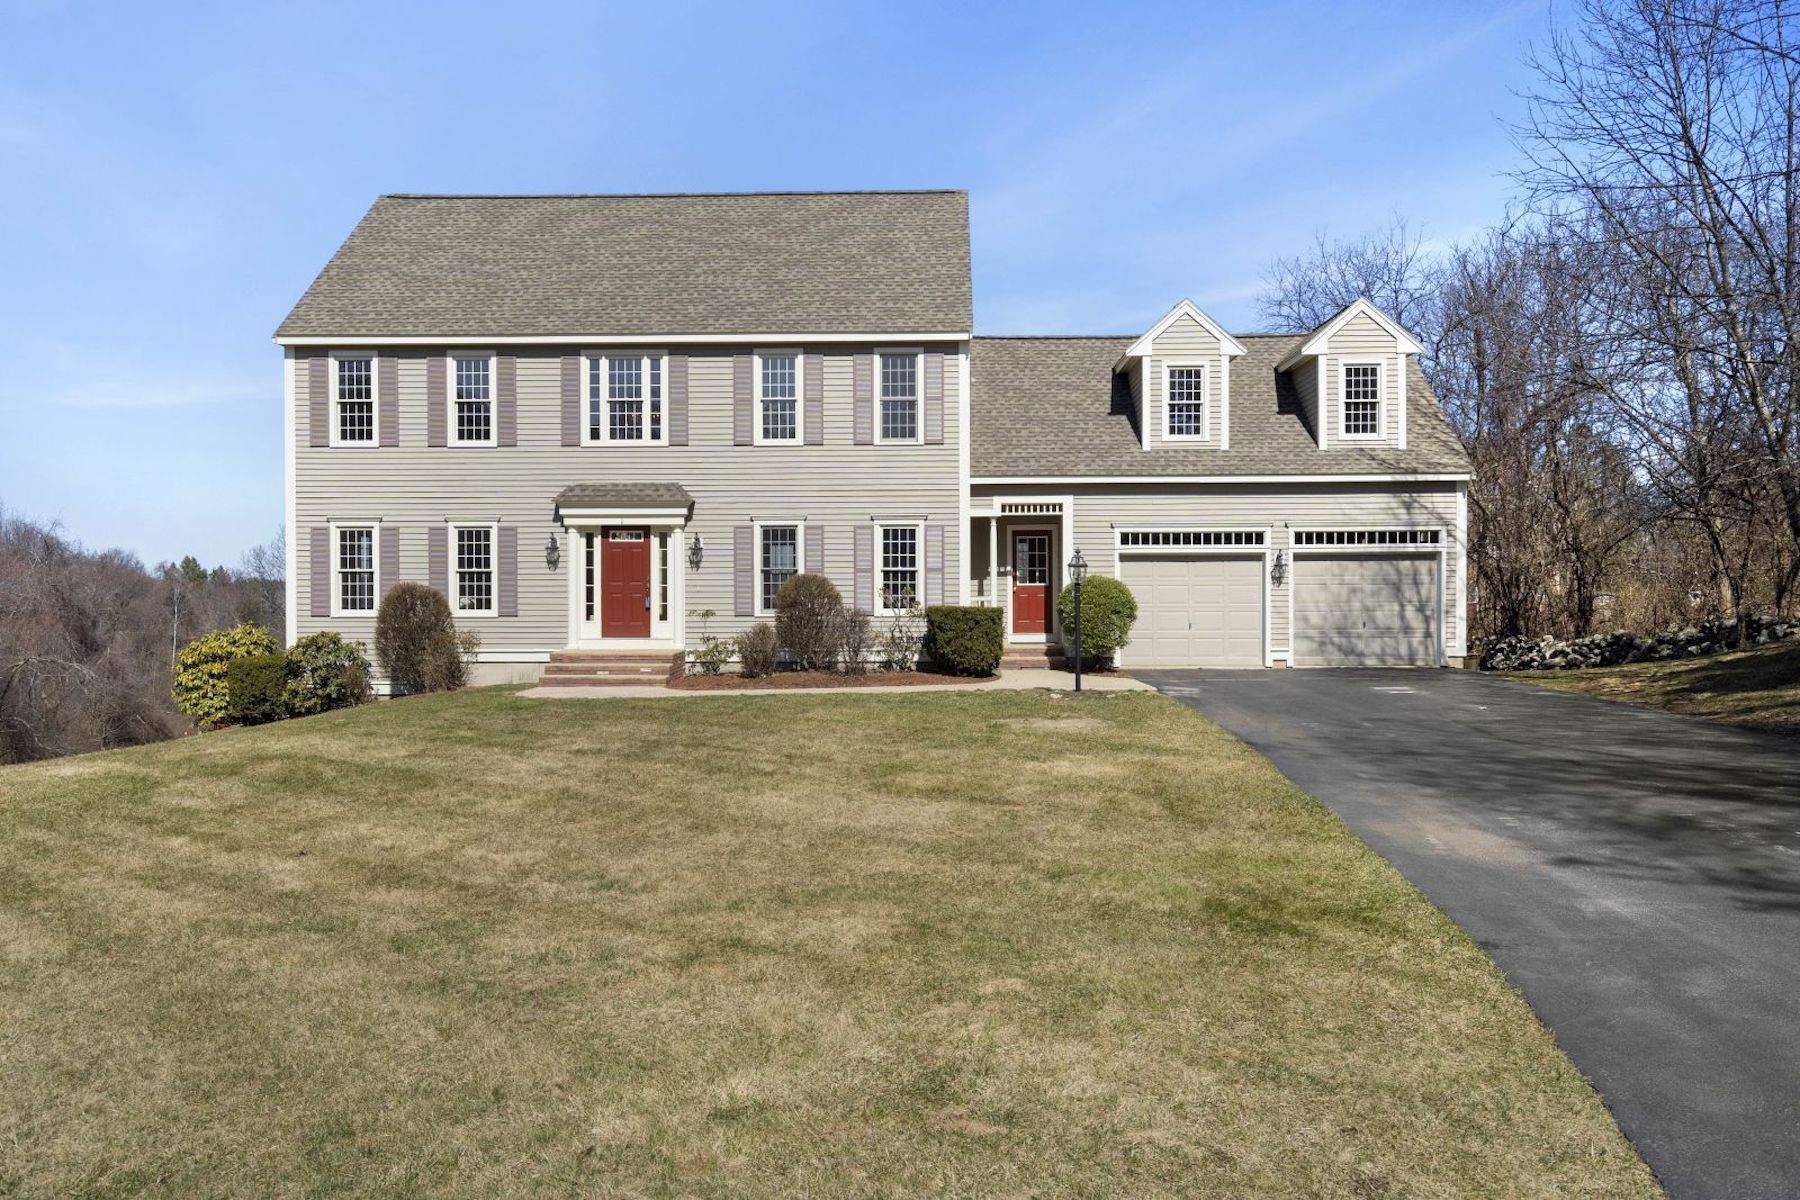 Single Family Homes for Active at Welcoming, Well-Cared-For Colonial 1 Belknap Street Westborough, Massachusetts 01581 United States